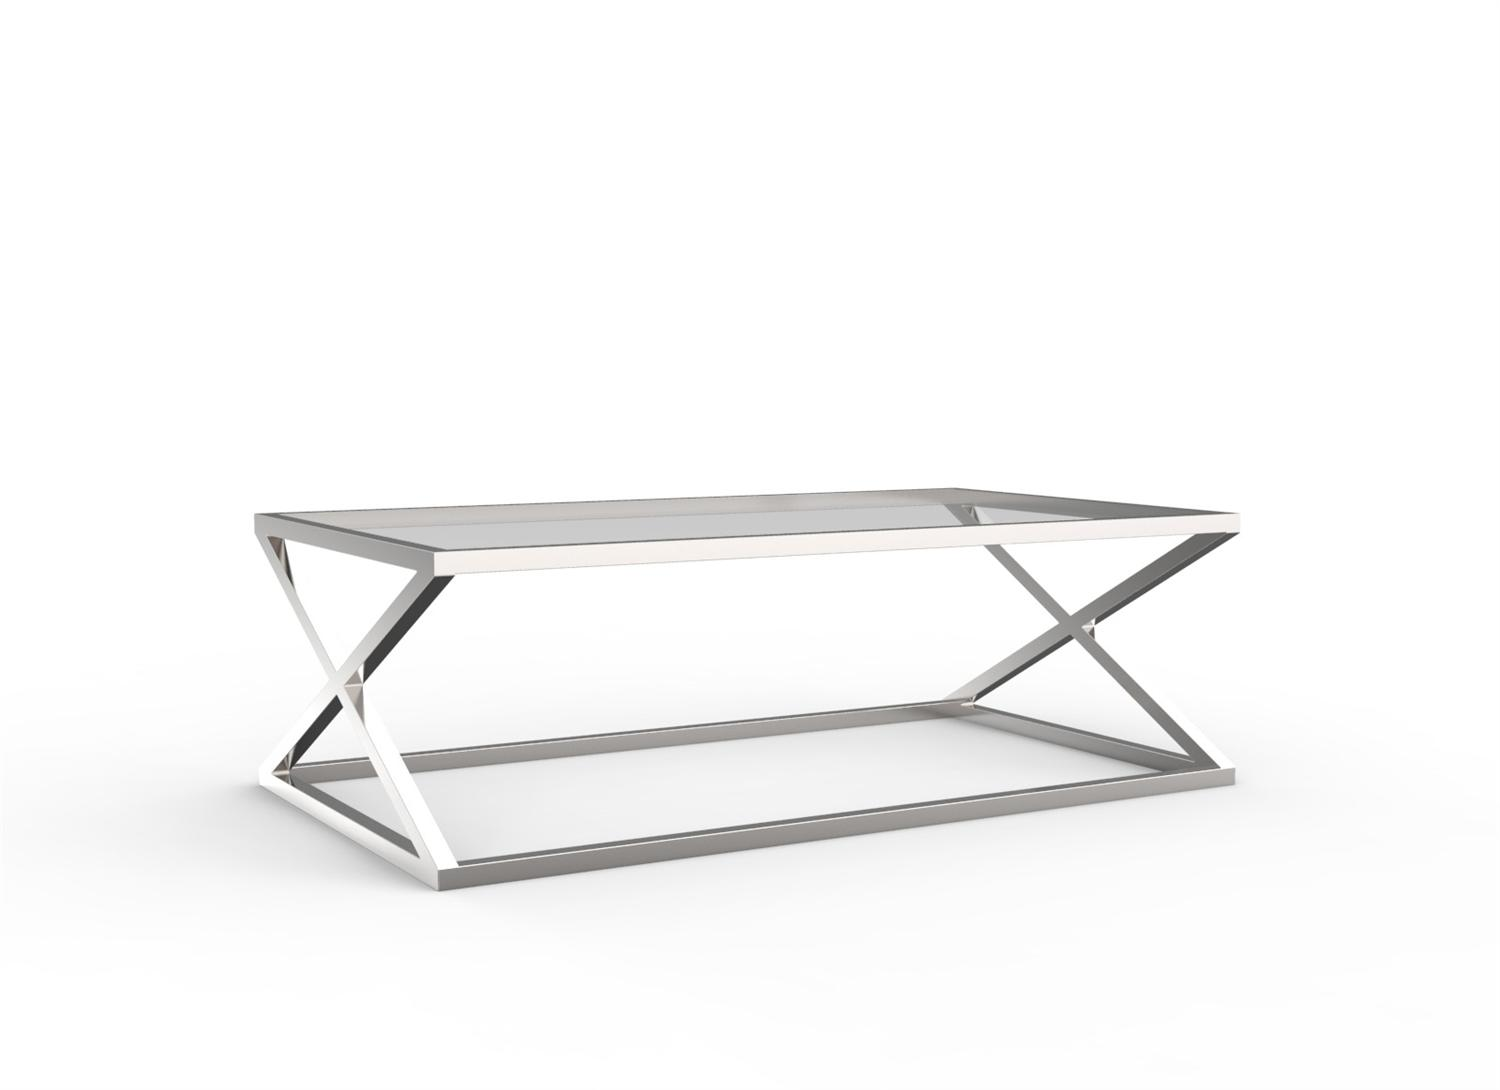 adora glass coffee table from tannahill furniture ltd. Black Bedroom Furniture Sets. Home Design Ideas